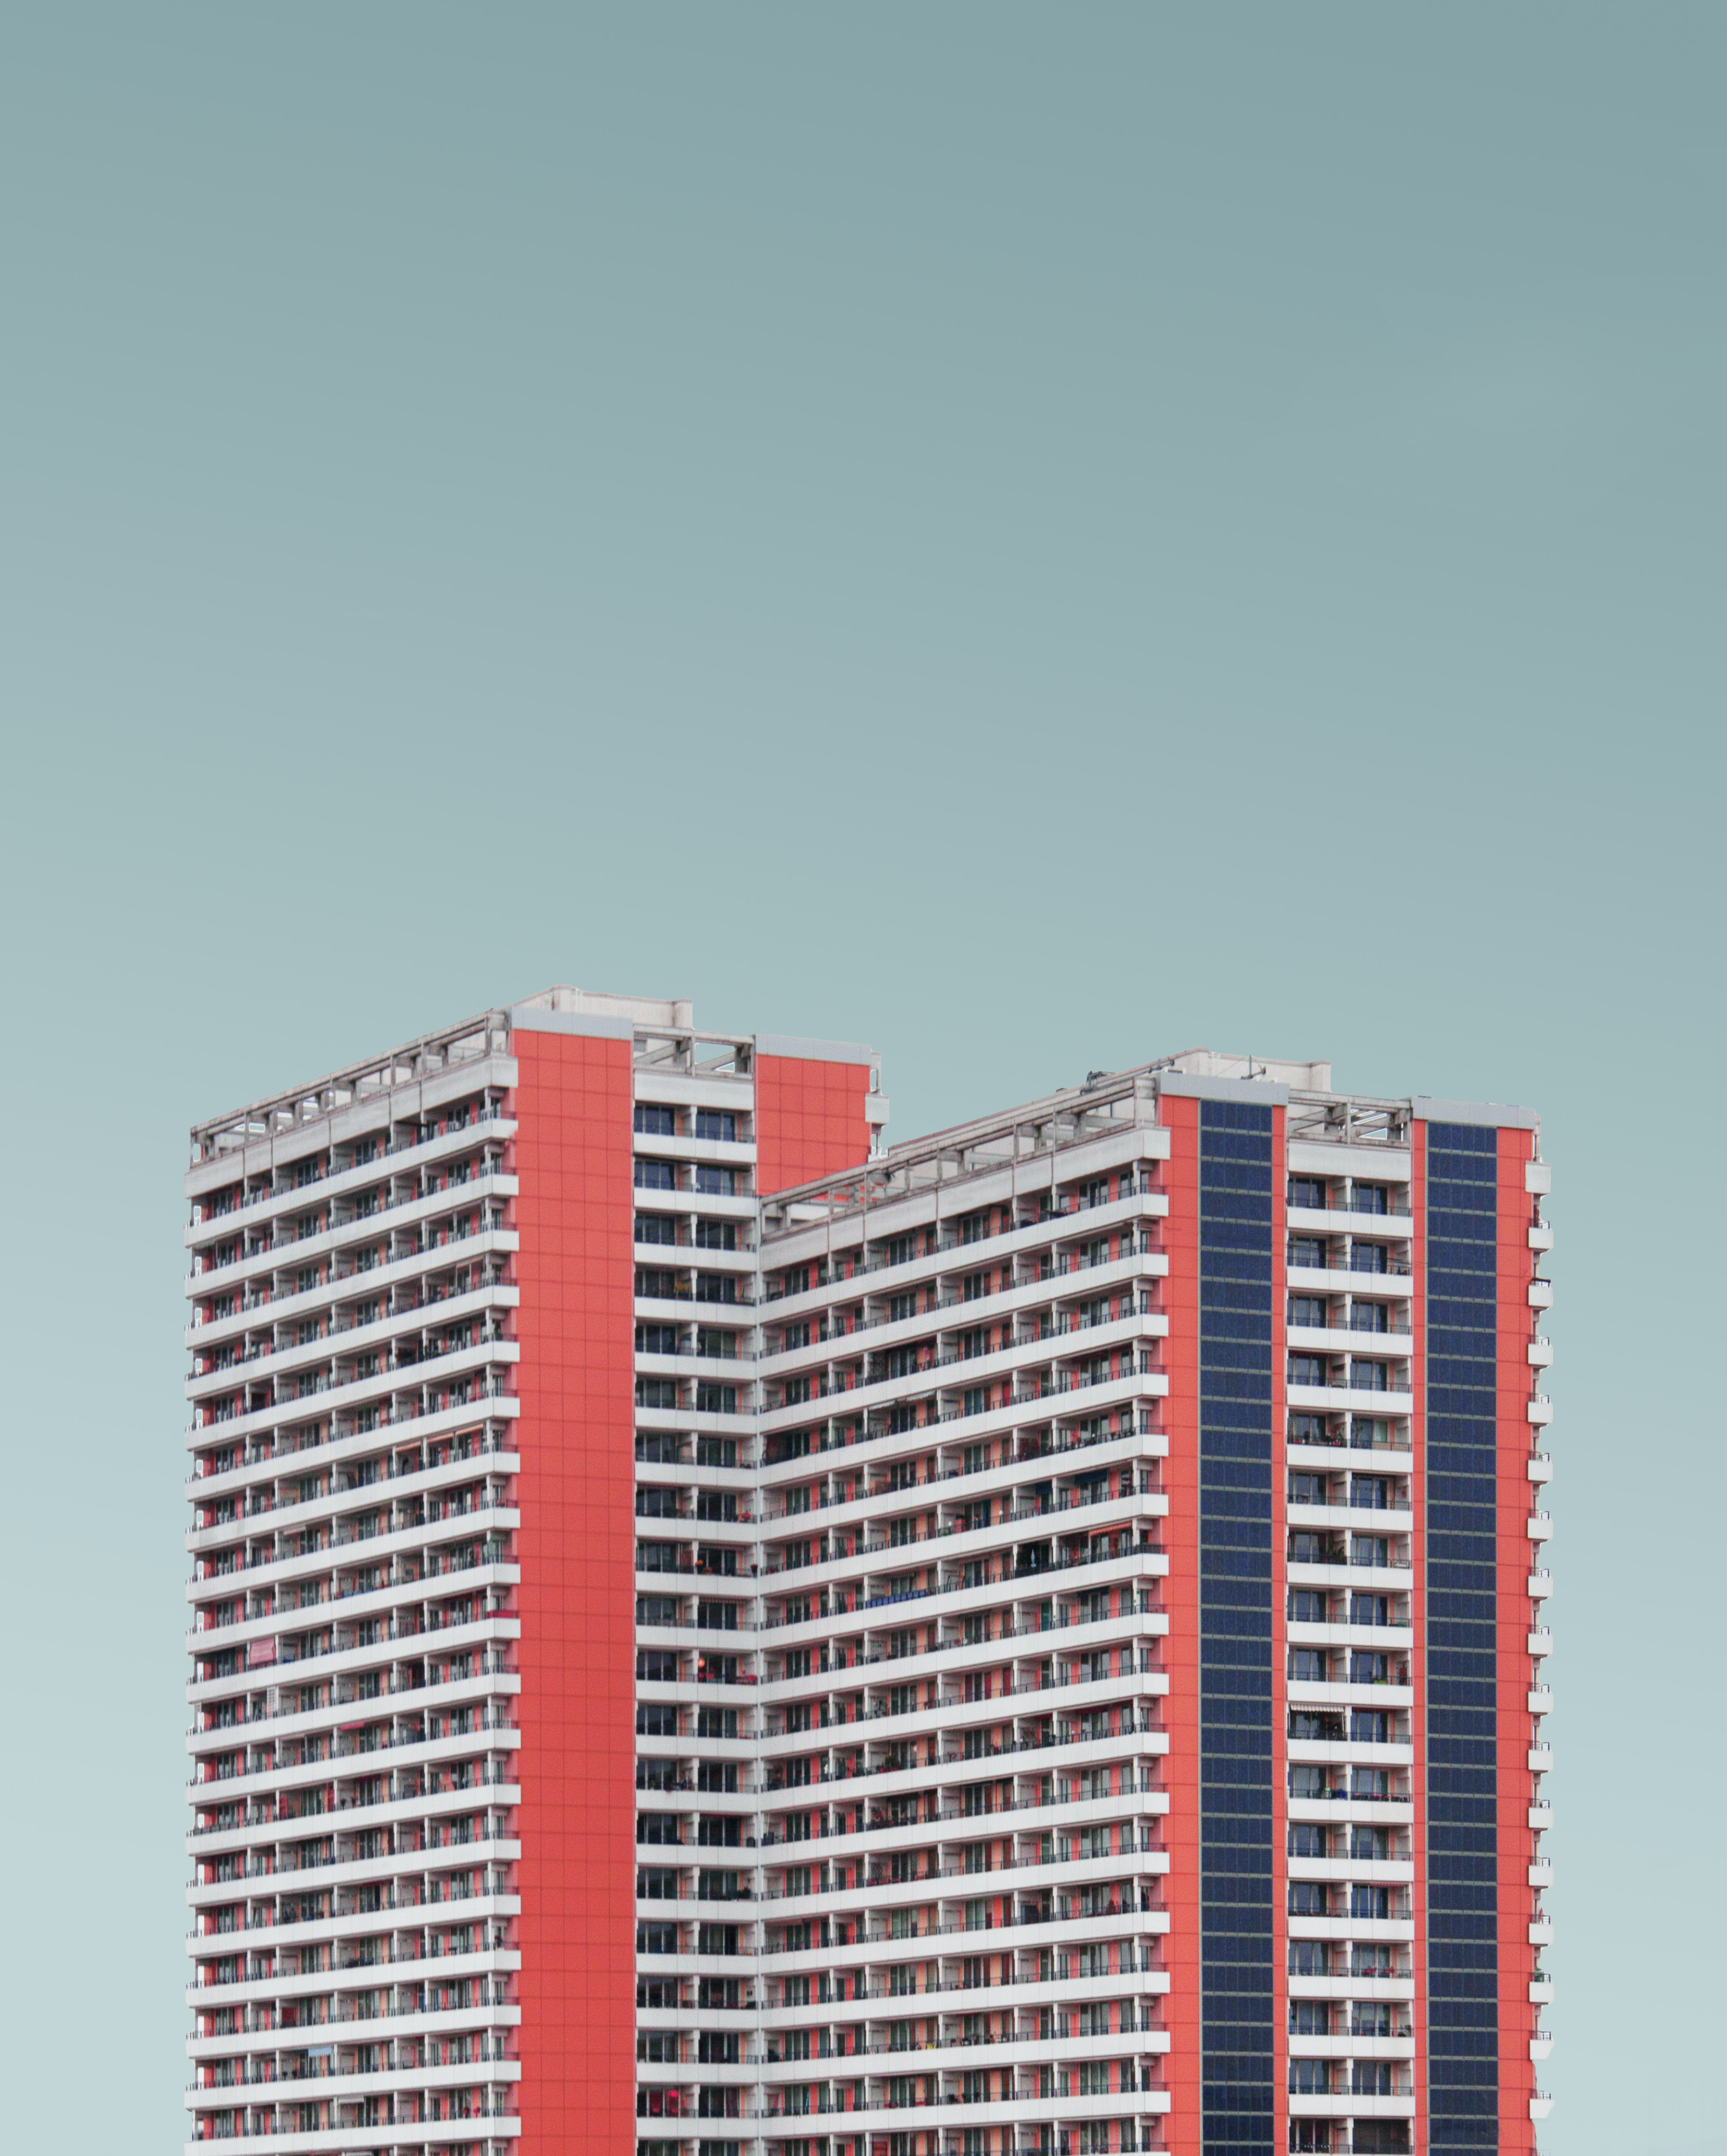 red and white high rise building under blue sky